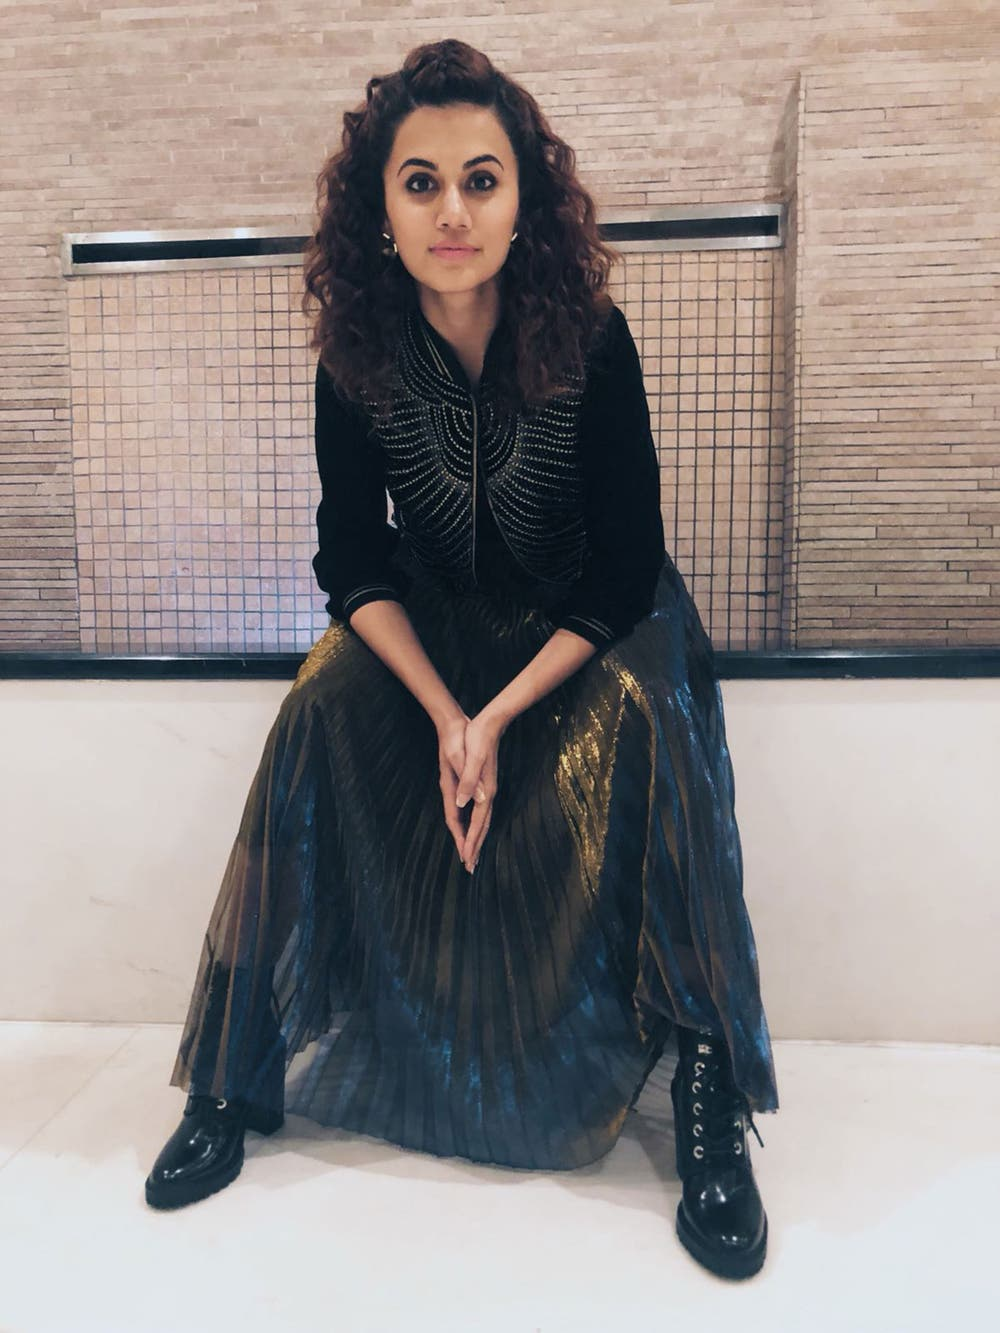 Taapsee Pannu in a Black & Gold Cord Bomber Jacket